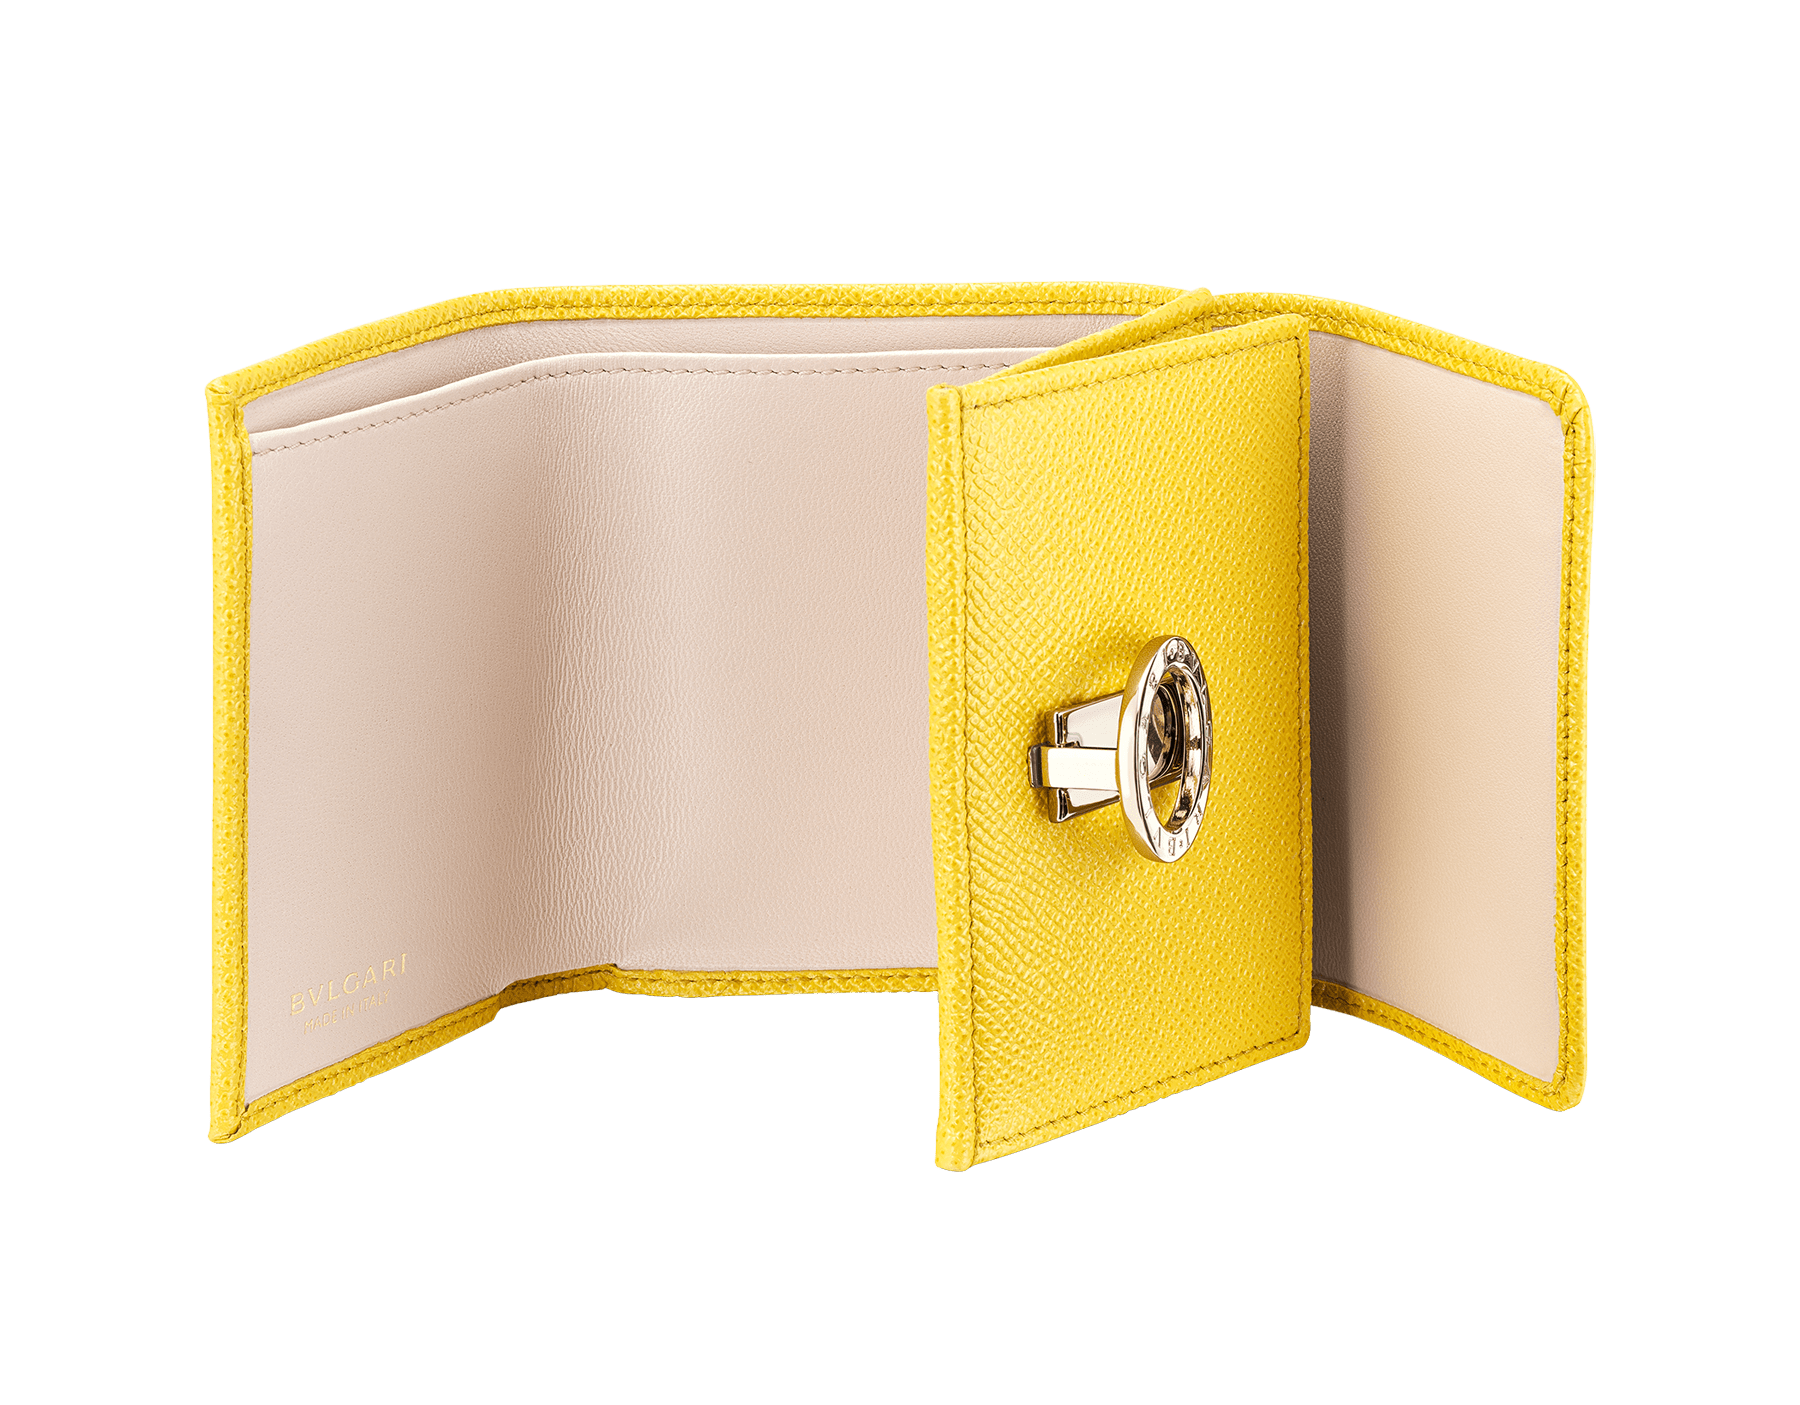 BVLGARI BVLGARI compact wallet in daisy topaz bright grain calf leather and crystal rose nappa leather. Iconic logo clip closure in light gold plated brass on the flap and a press stud closure on the body. 289768 image 2